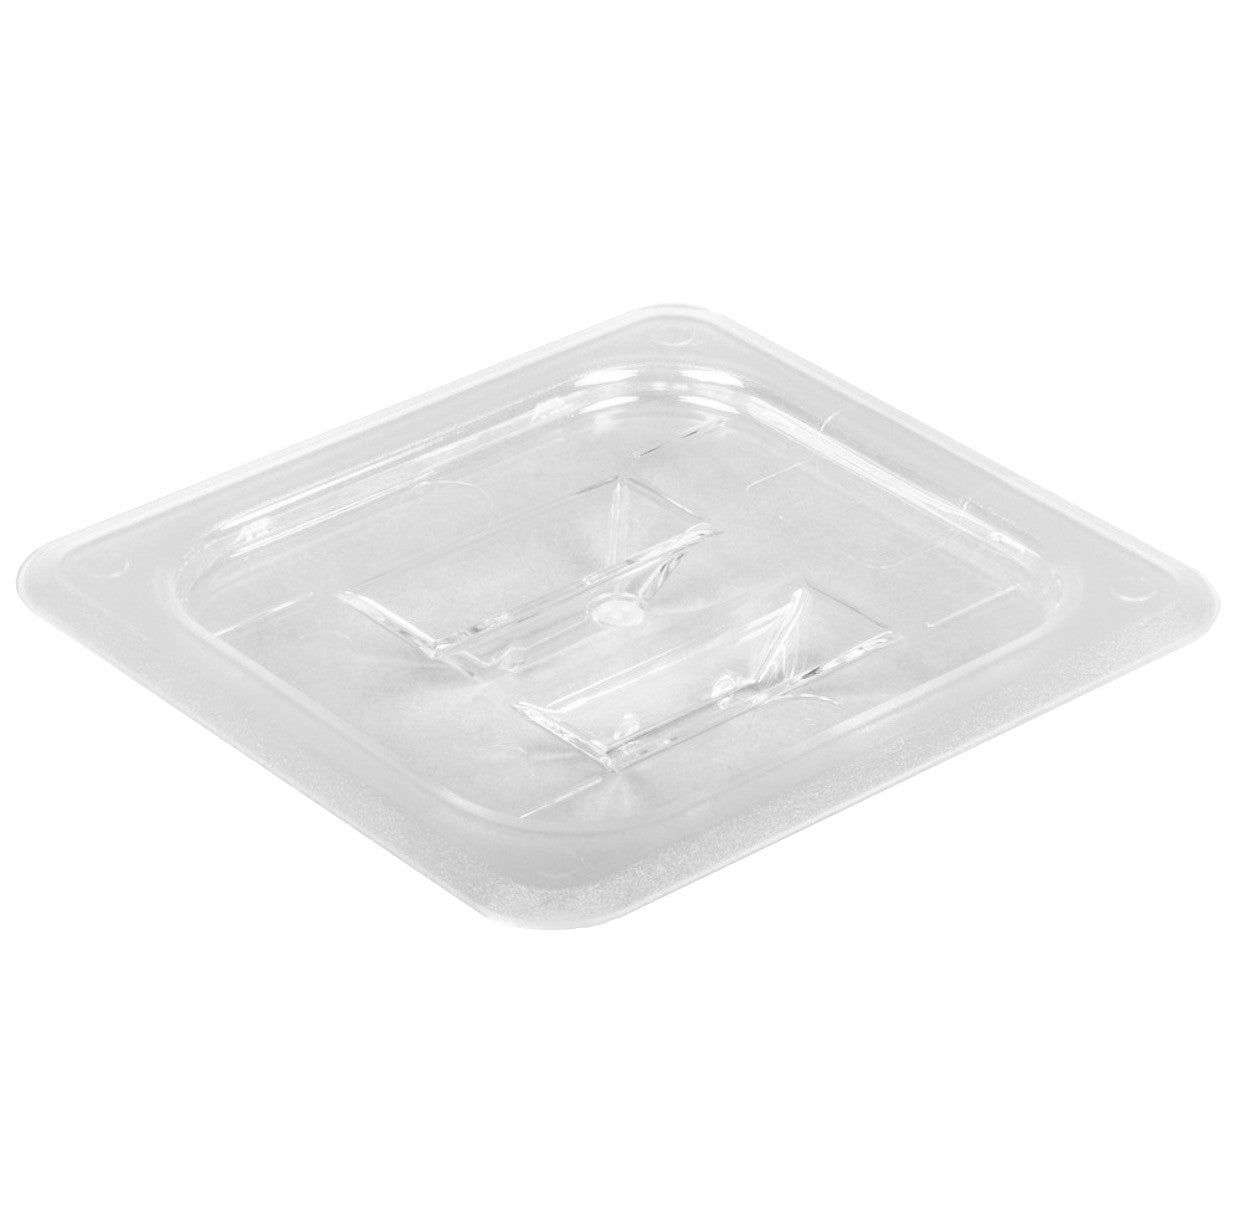 Thunder Group Clear Polycarbonate Sixth Size Food Pan, Polycarbonate - eKitchenary